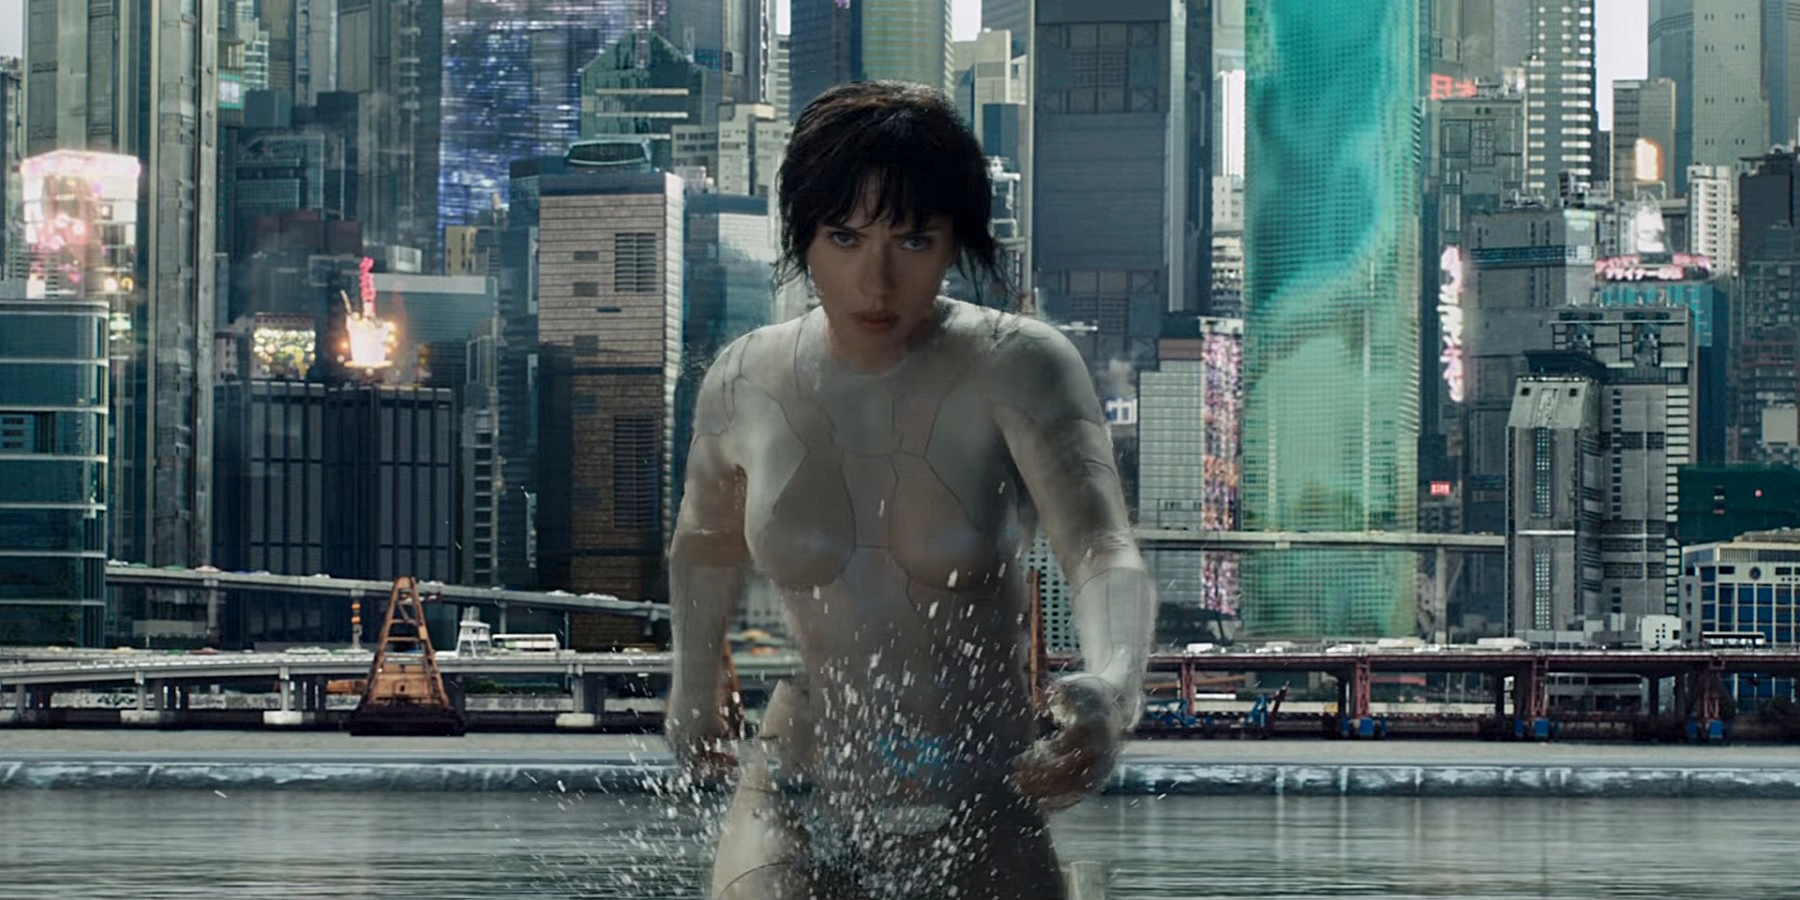 Ghost in the Shell Trailer - Major cloaking